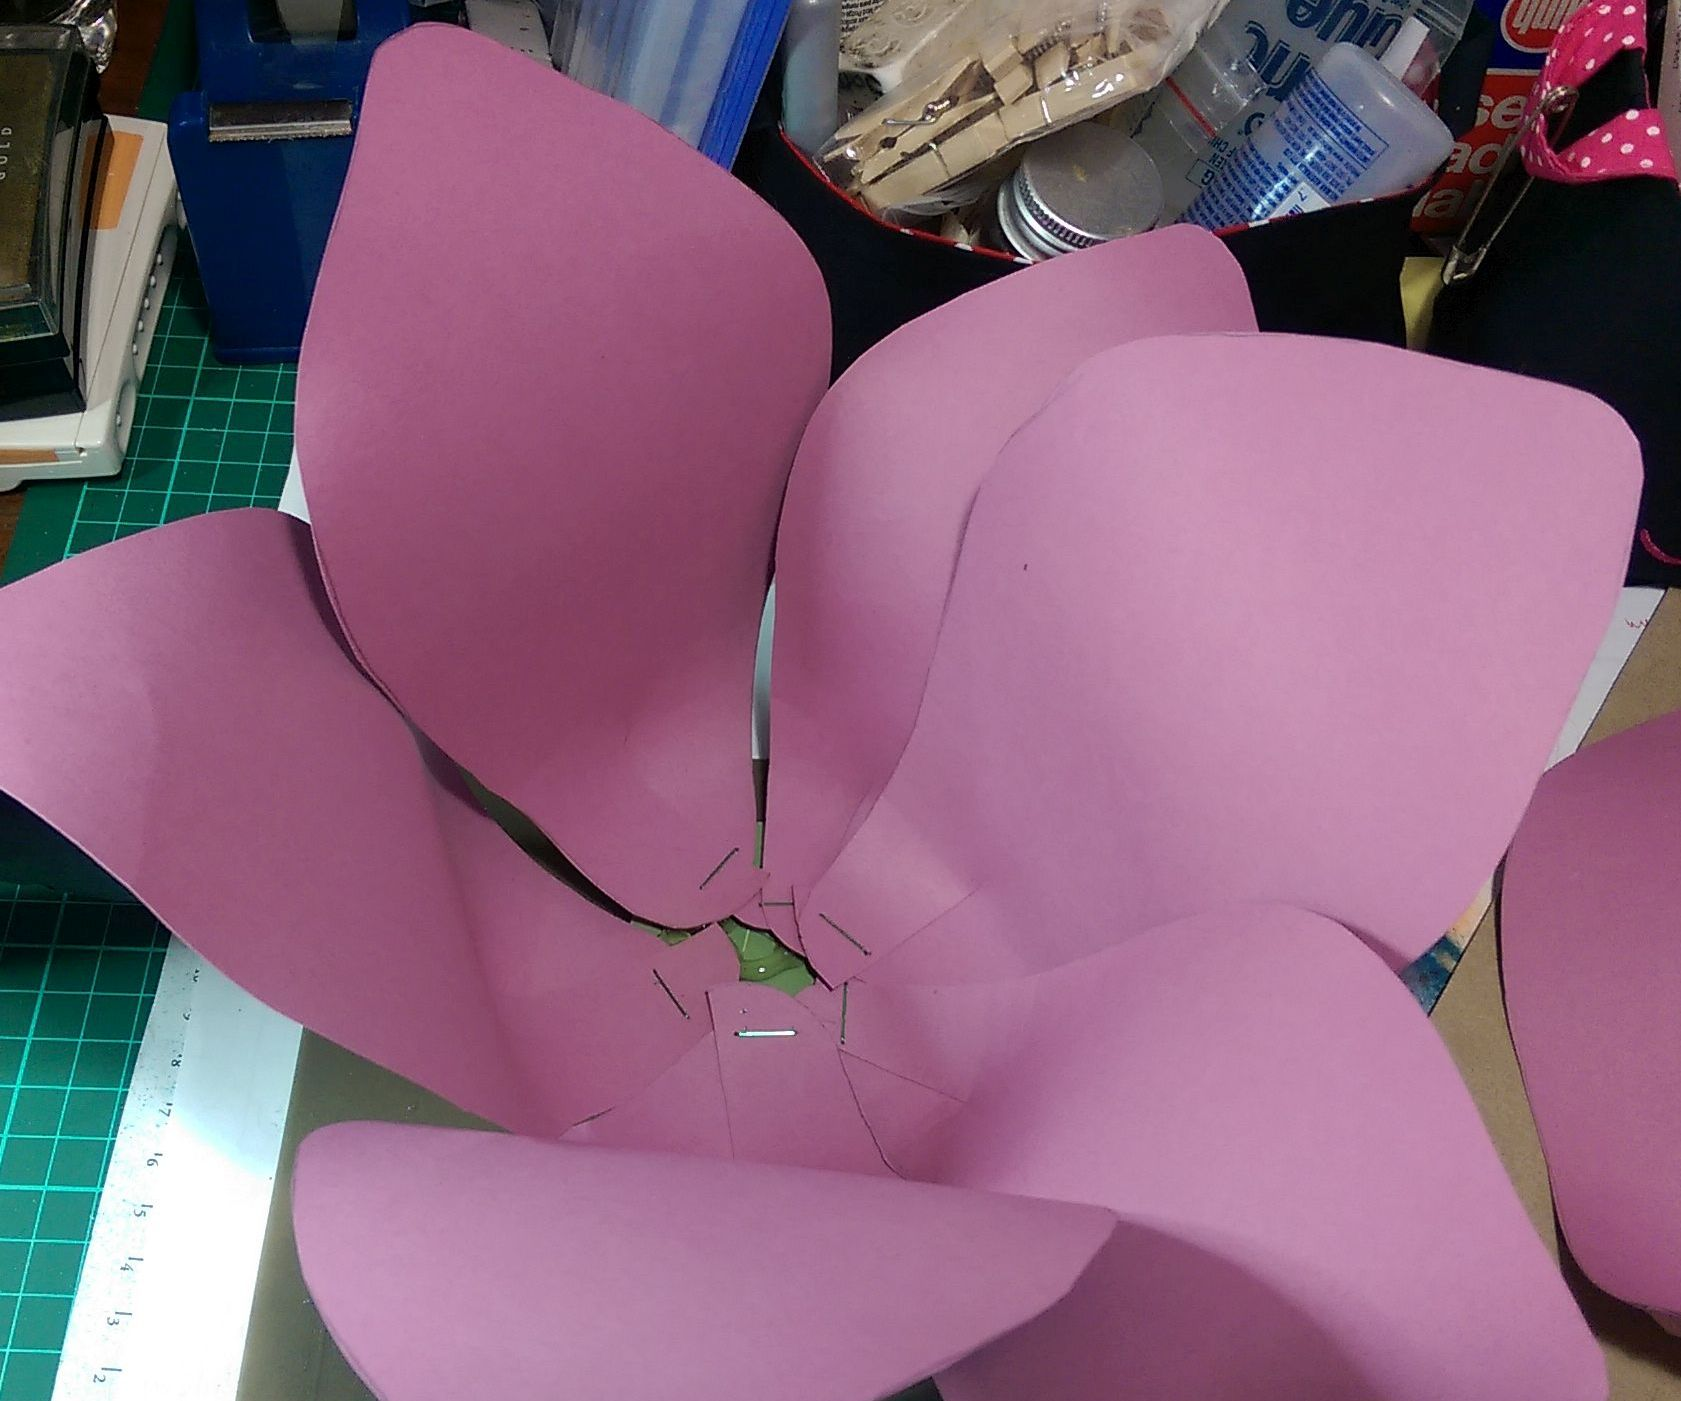 Assembly of a giant paper flower